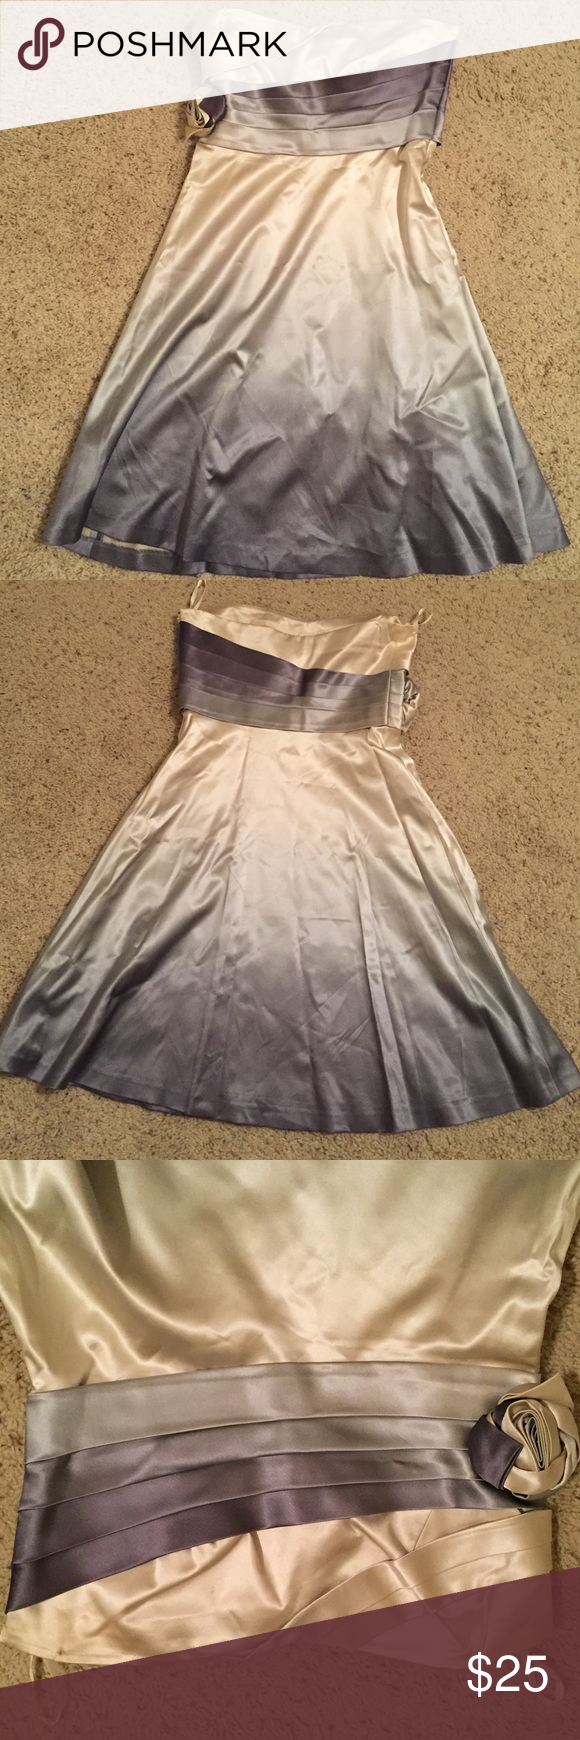 White ombré cocktail dress banana republic and silk